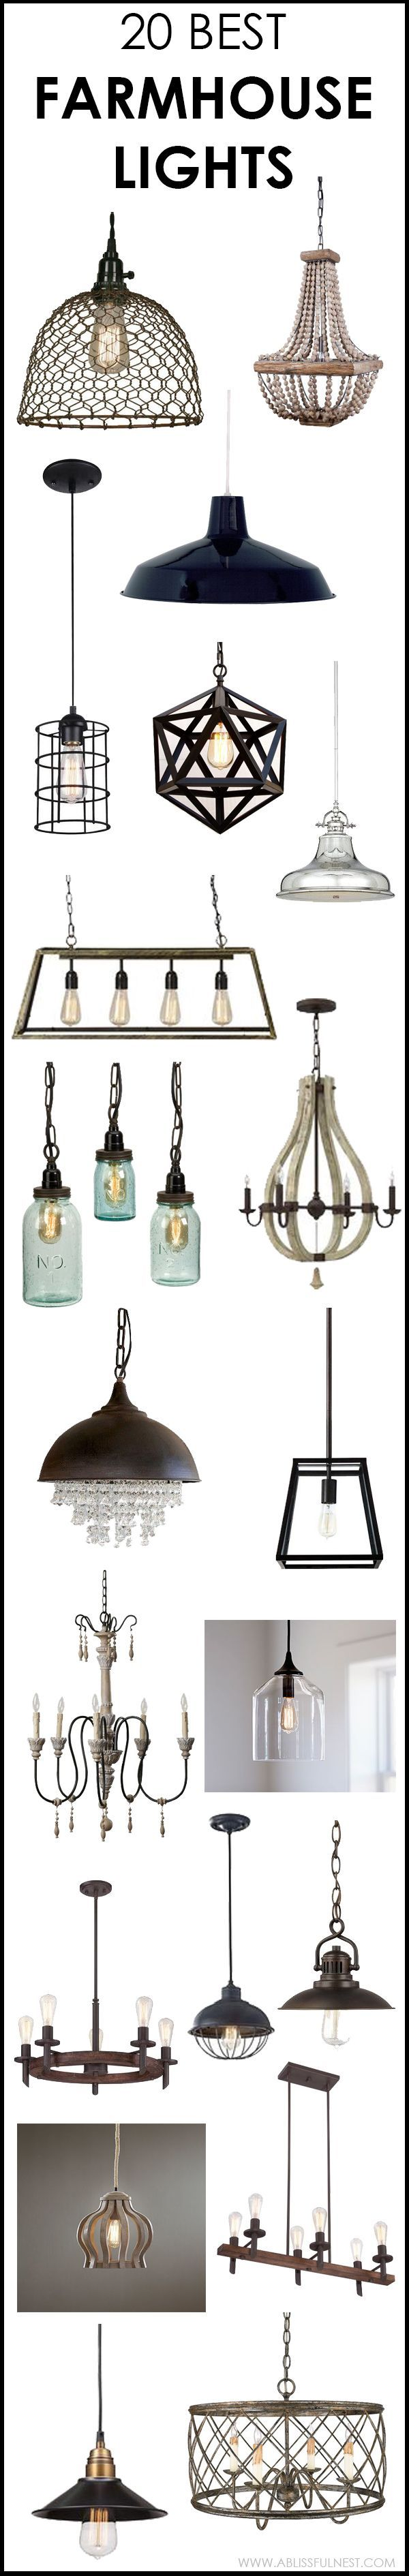 We've got 20 of the best farmhouse lights for you to choose from! If you are looking to get that Fixer Upper style then you will love these industrial lighting choices to get you that vintage farmhouse style. See more on http://ablissfulnest.com #farmhouse #farm